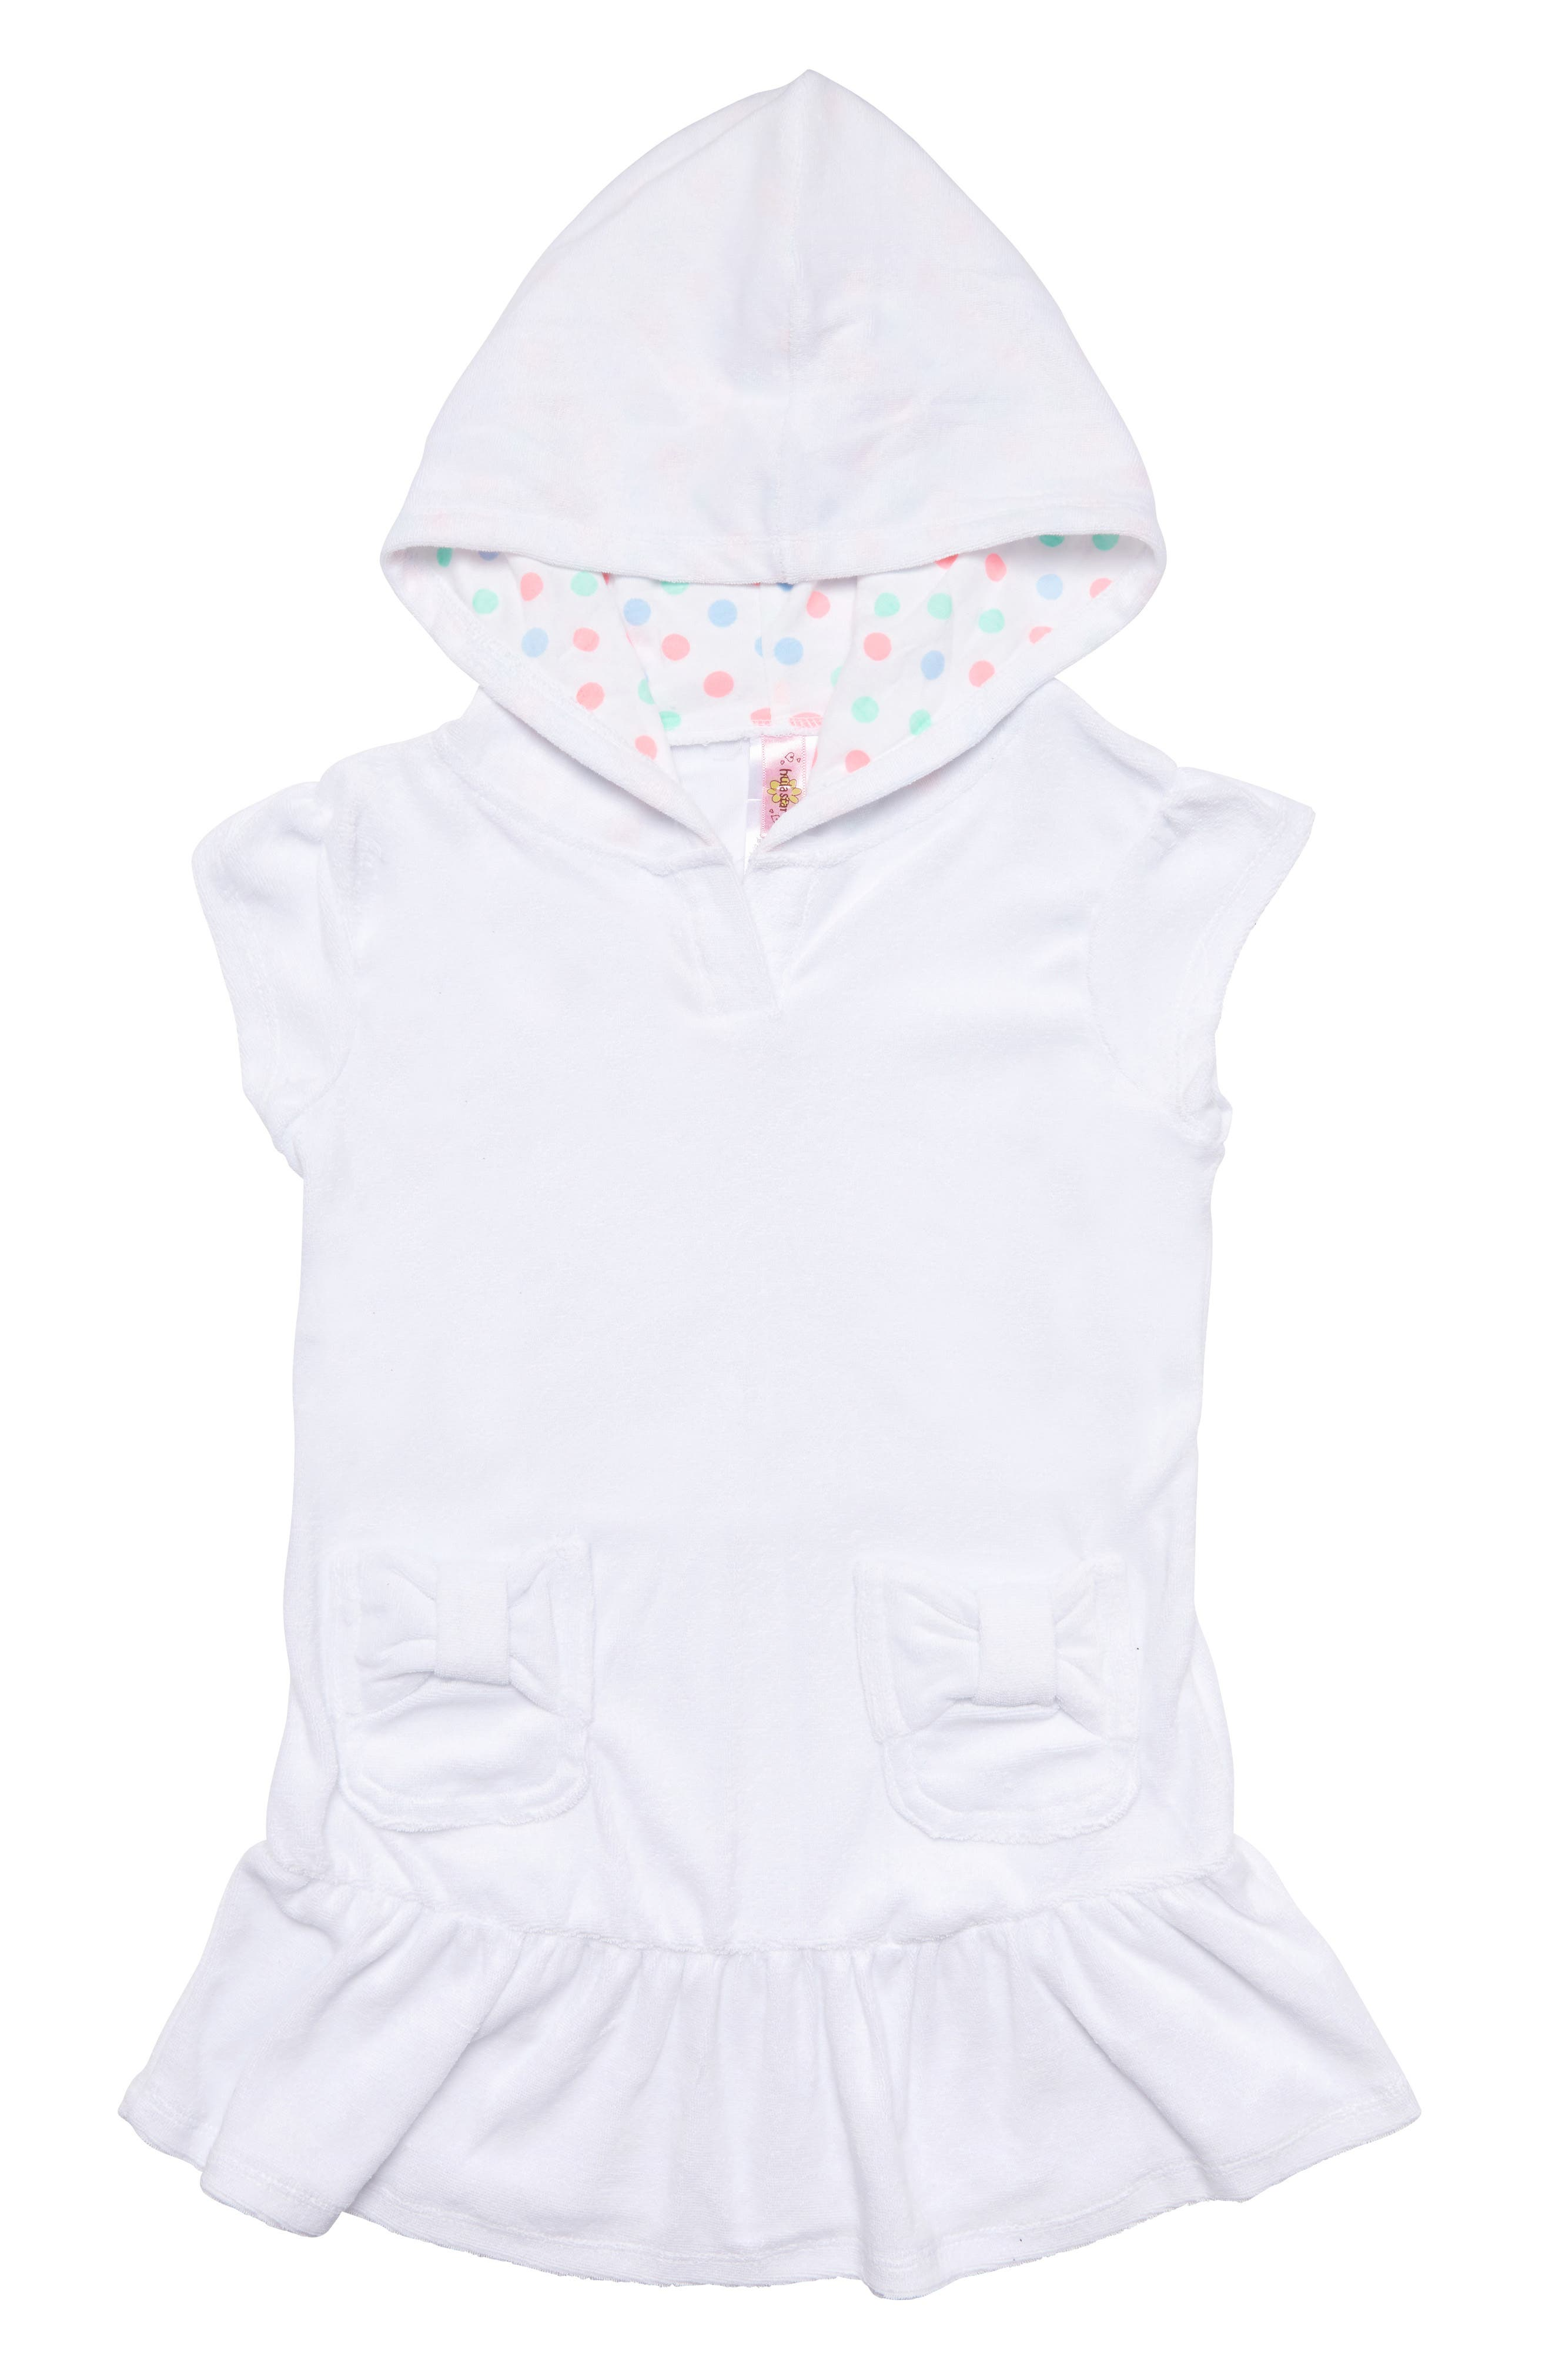 HULA STAR Cotton Cloud Hooded Cover-Up Dress, Main, color, WHITE